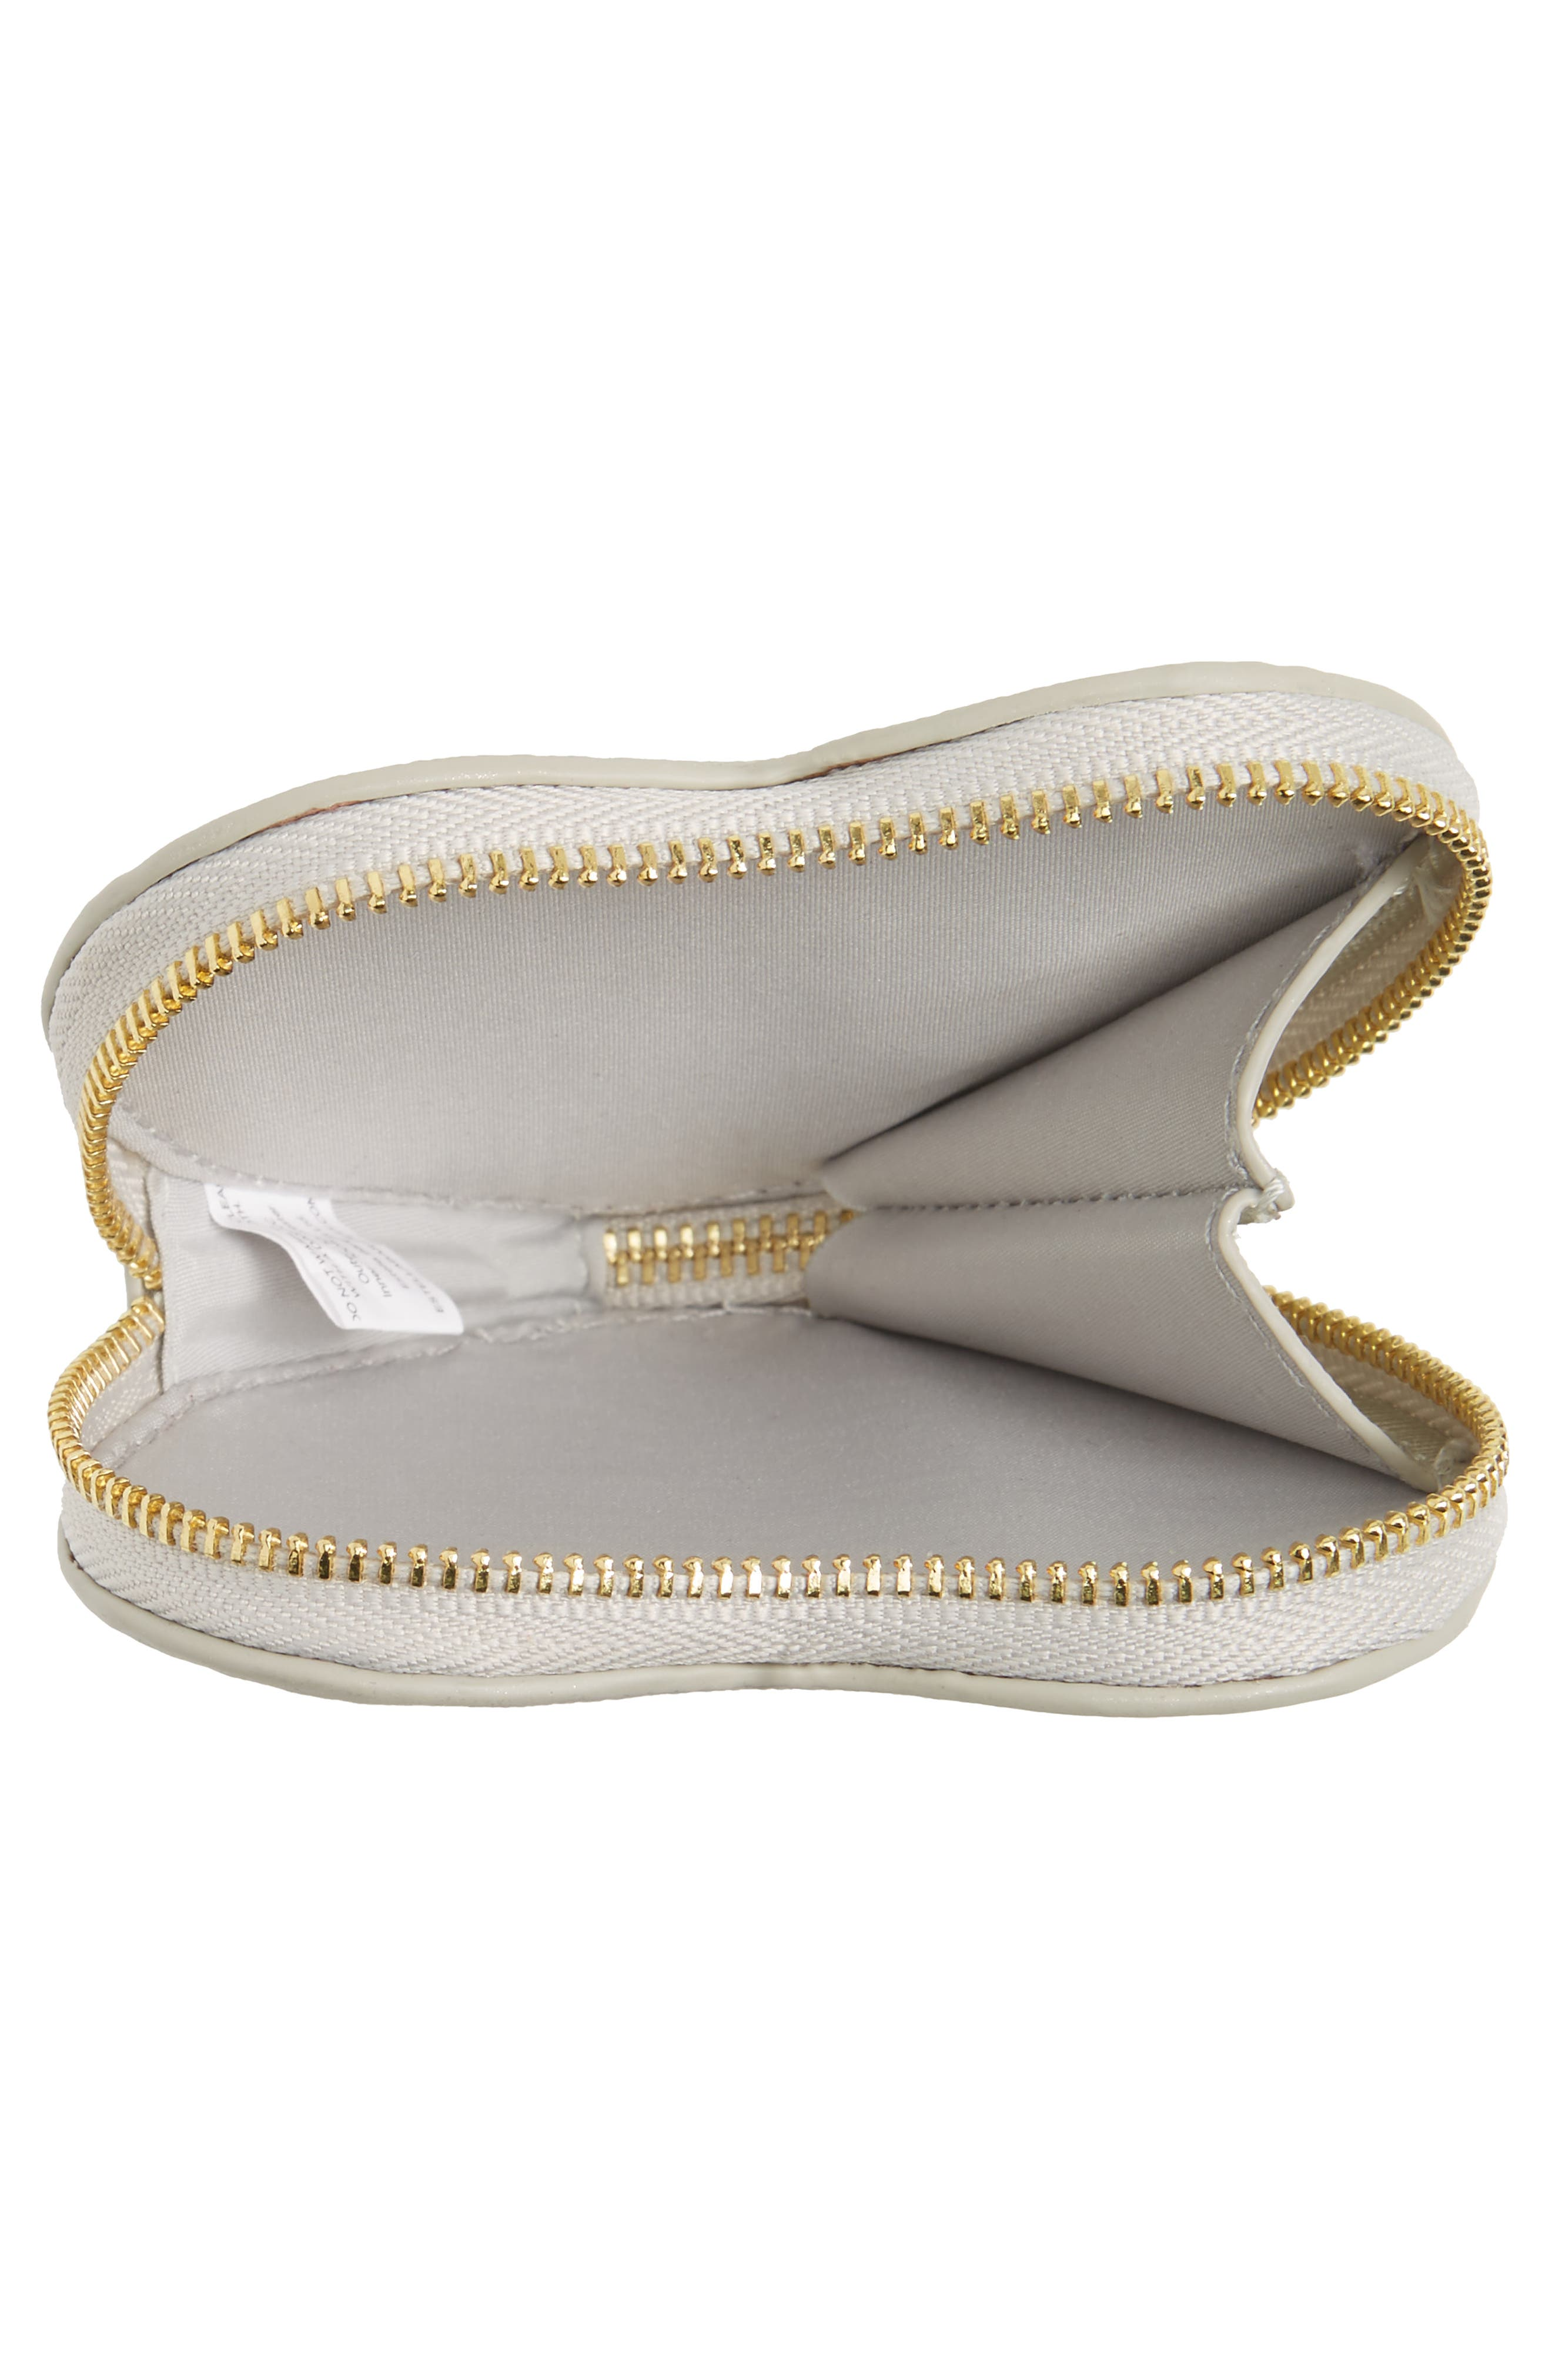 Heart Dream Faux Leather Coin Purse,                             Alternate thumbnail 4, color,